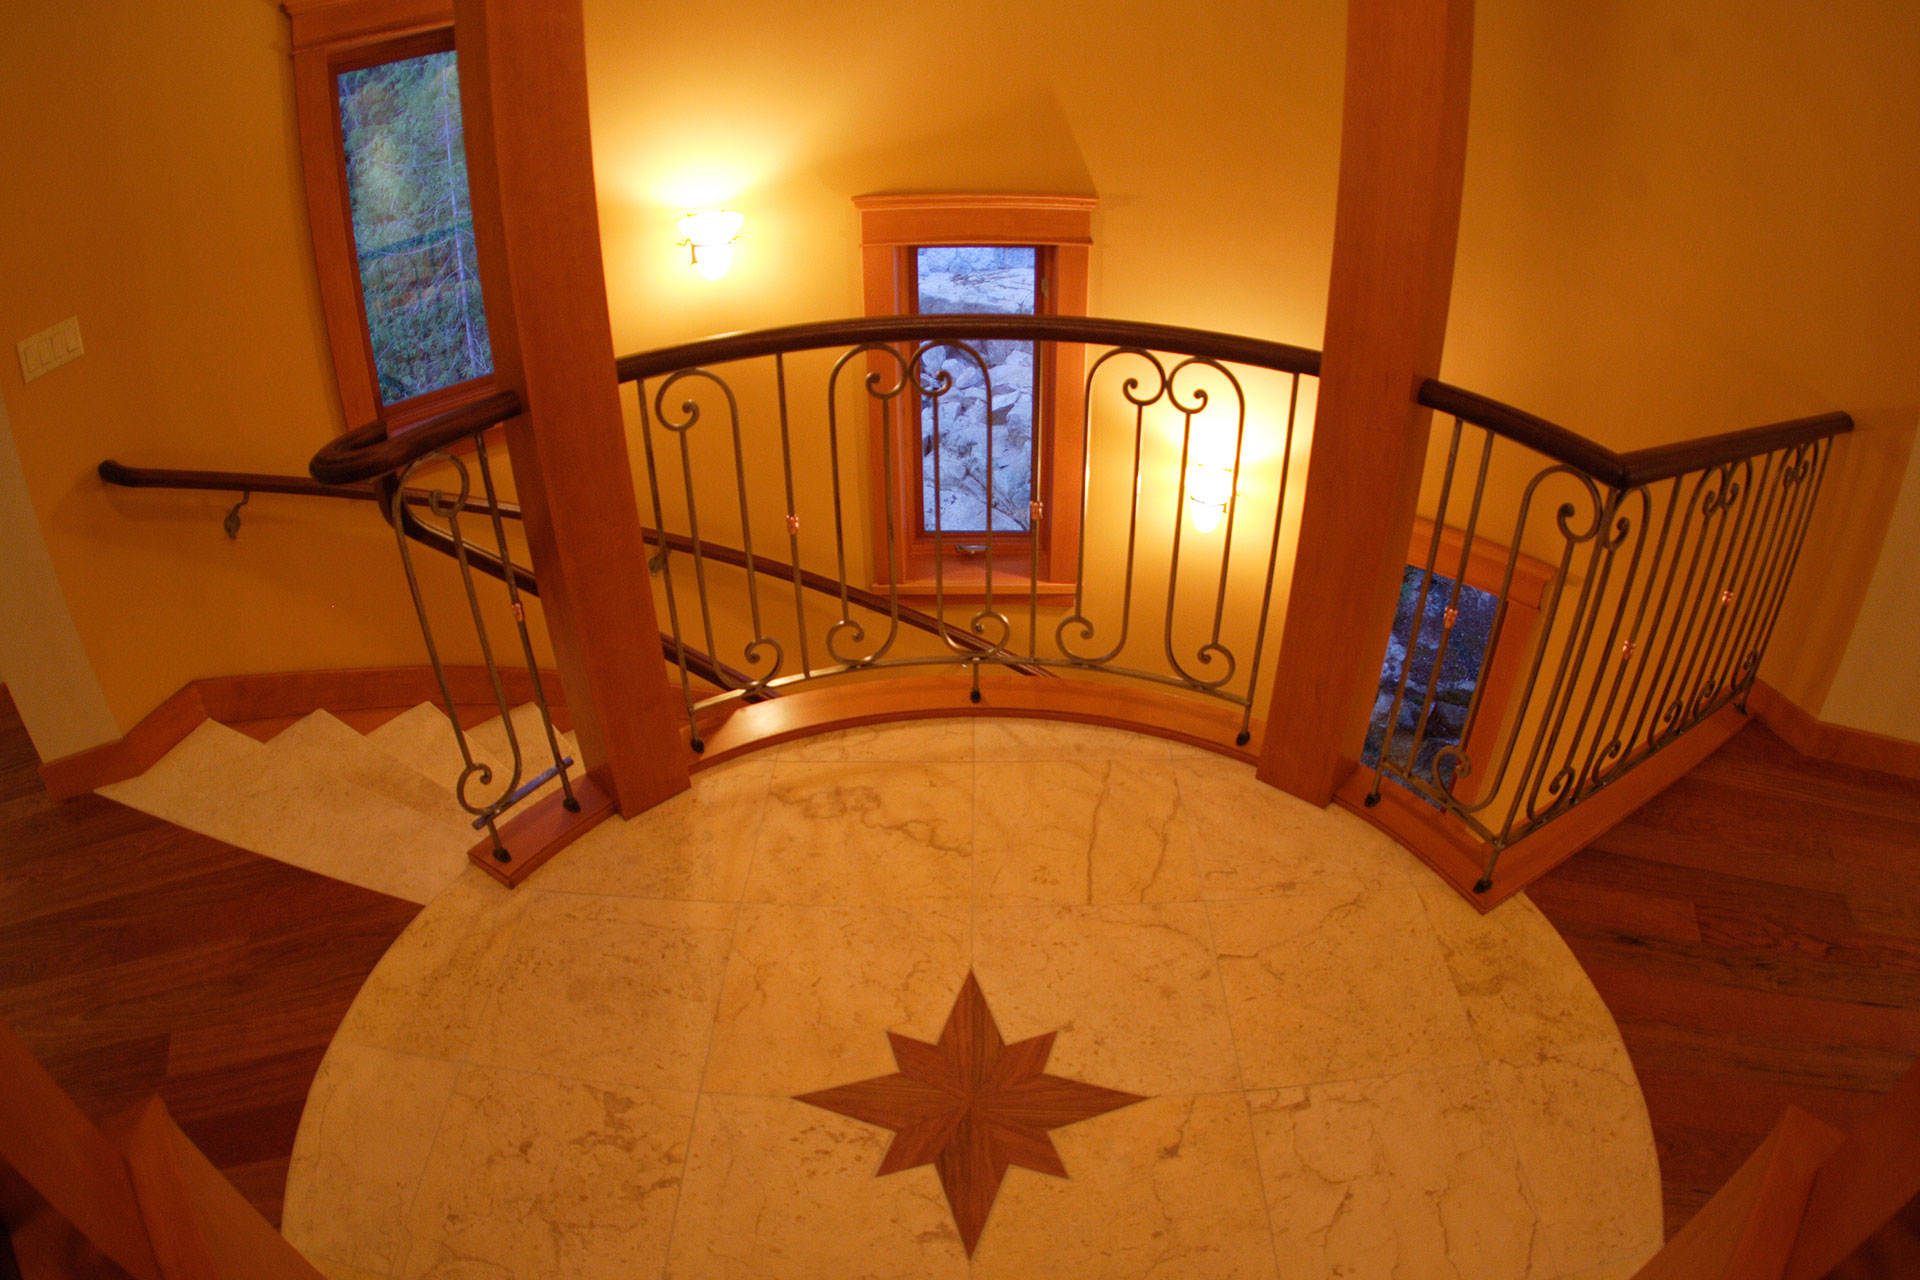 Northwood home staircase view